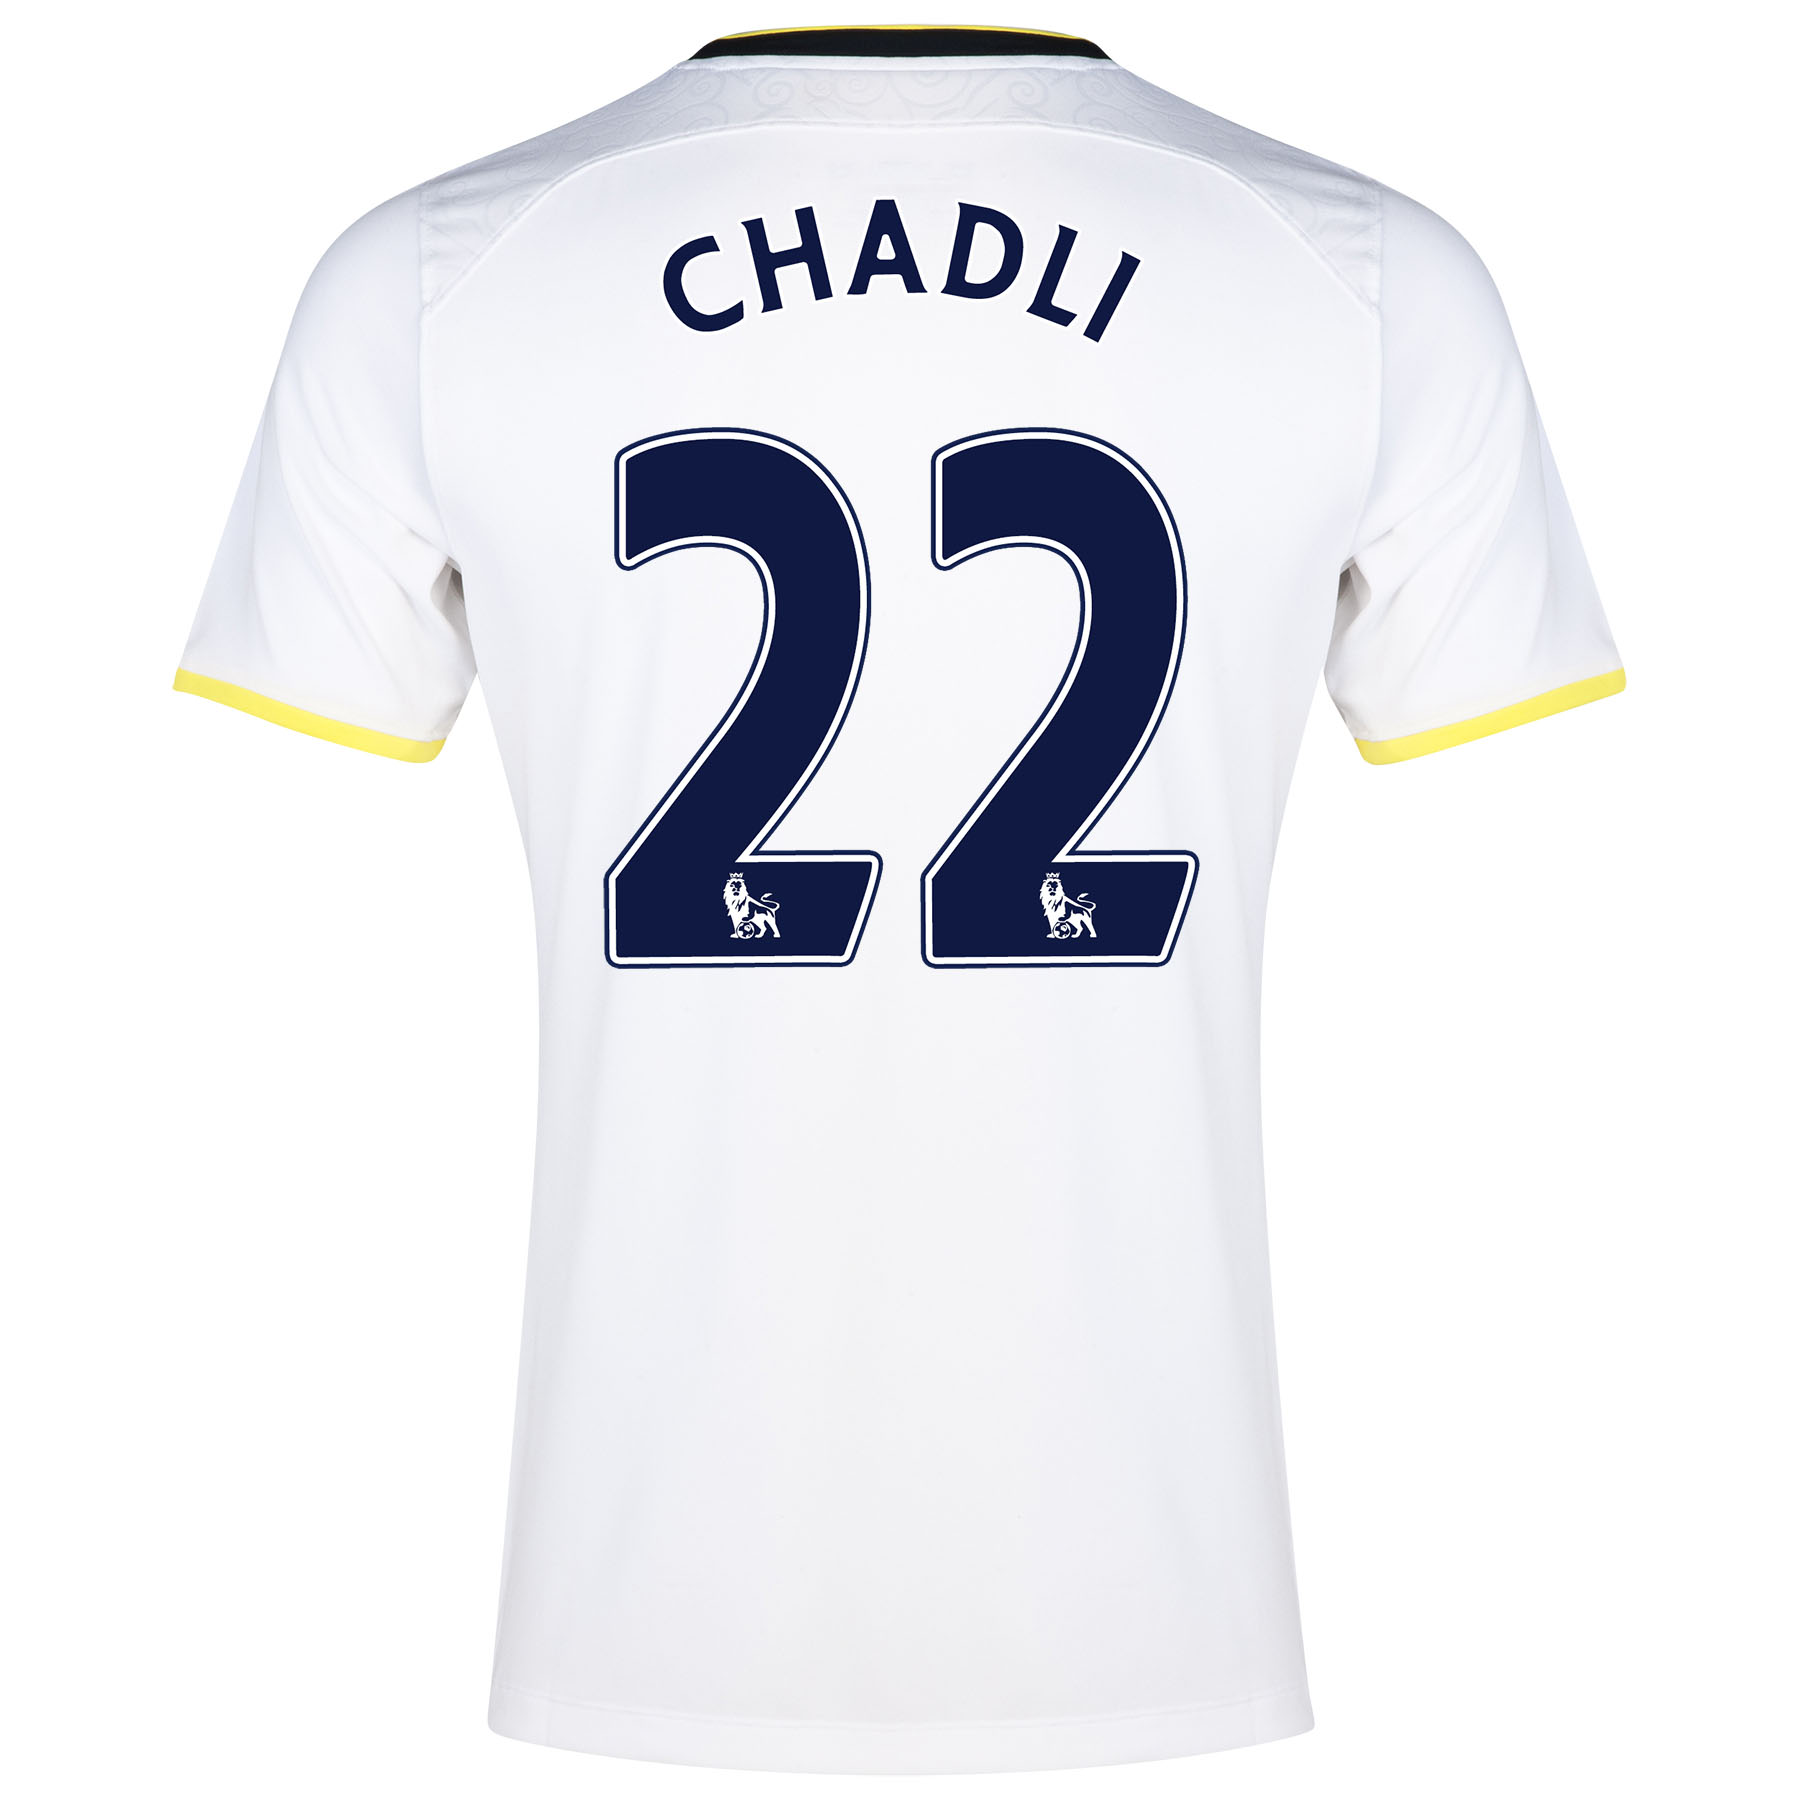 Tottenham Hotspur Home Shirt 2014/15 with Chadli 21 printing